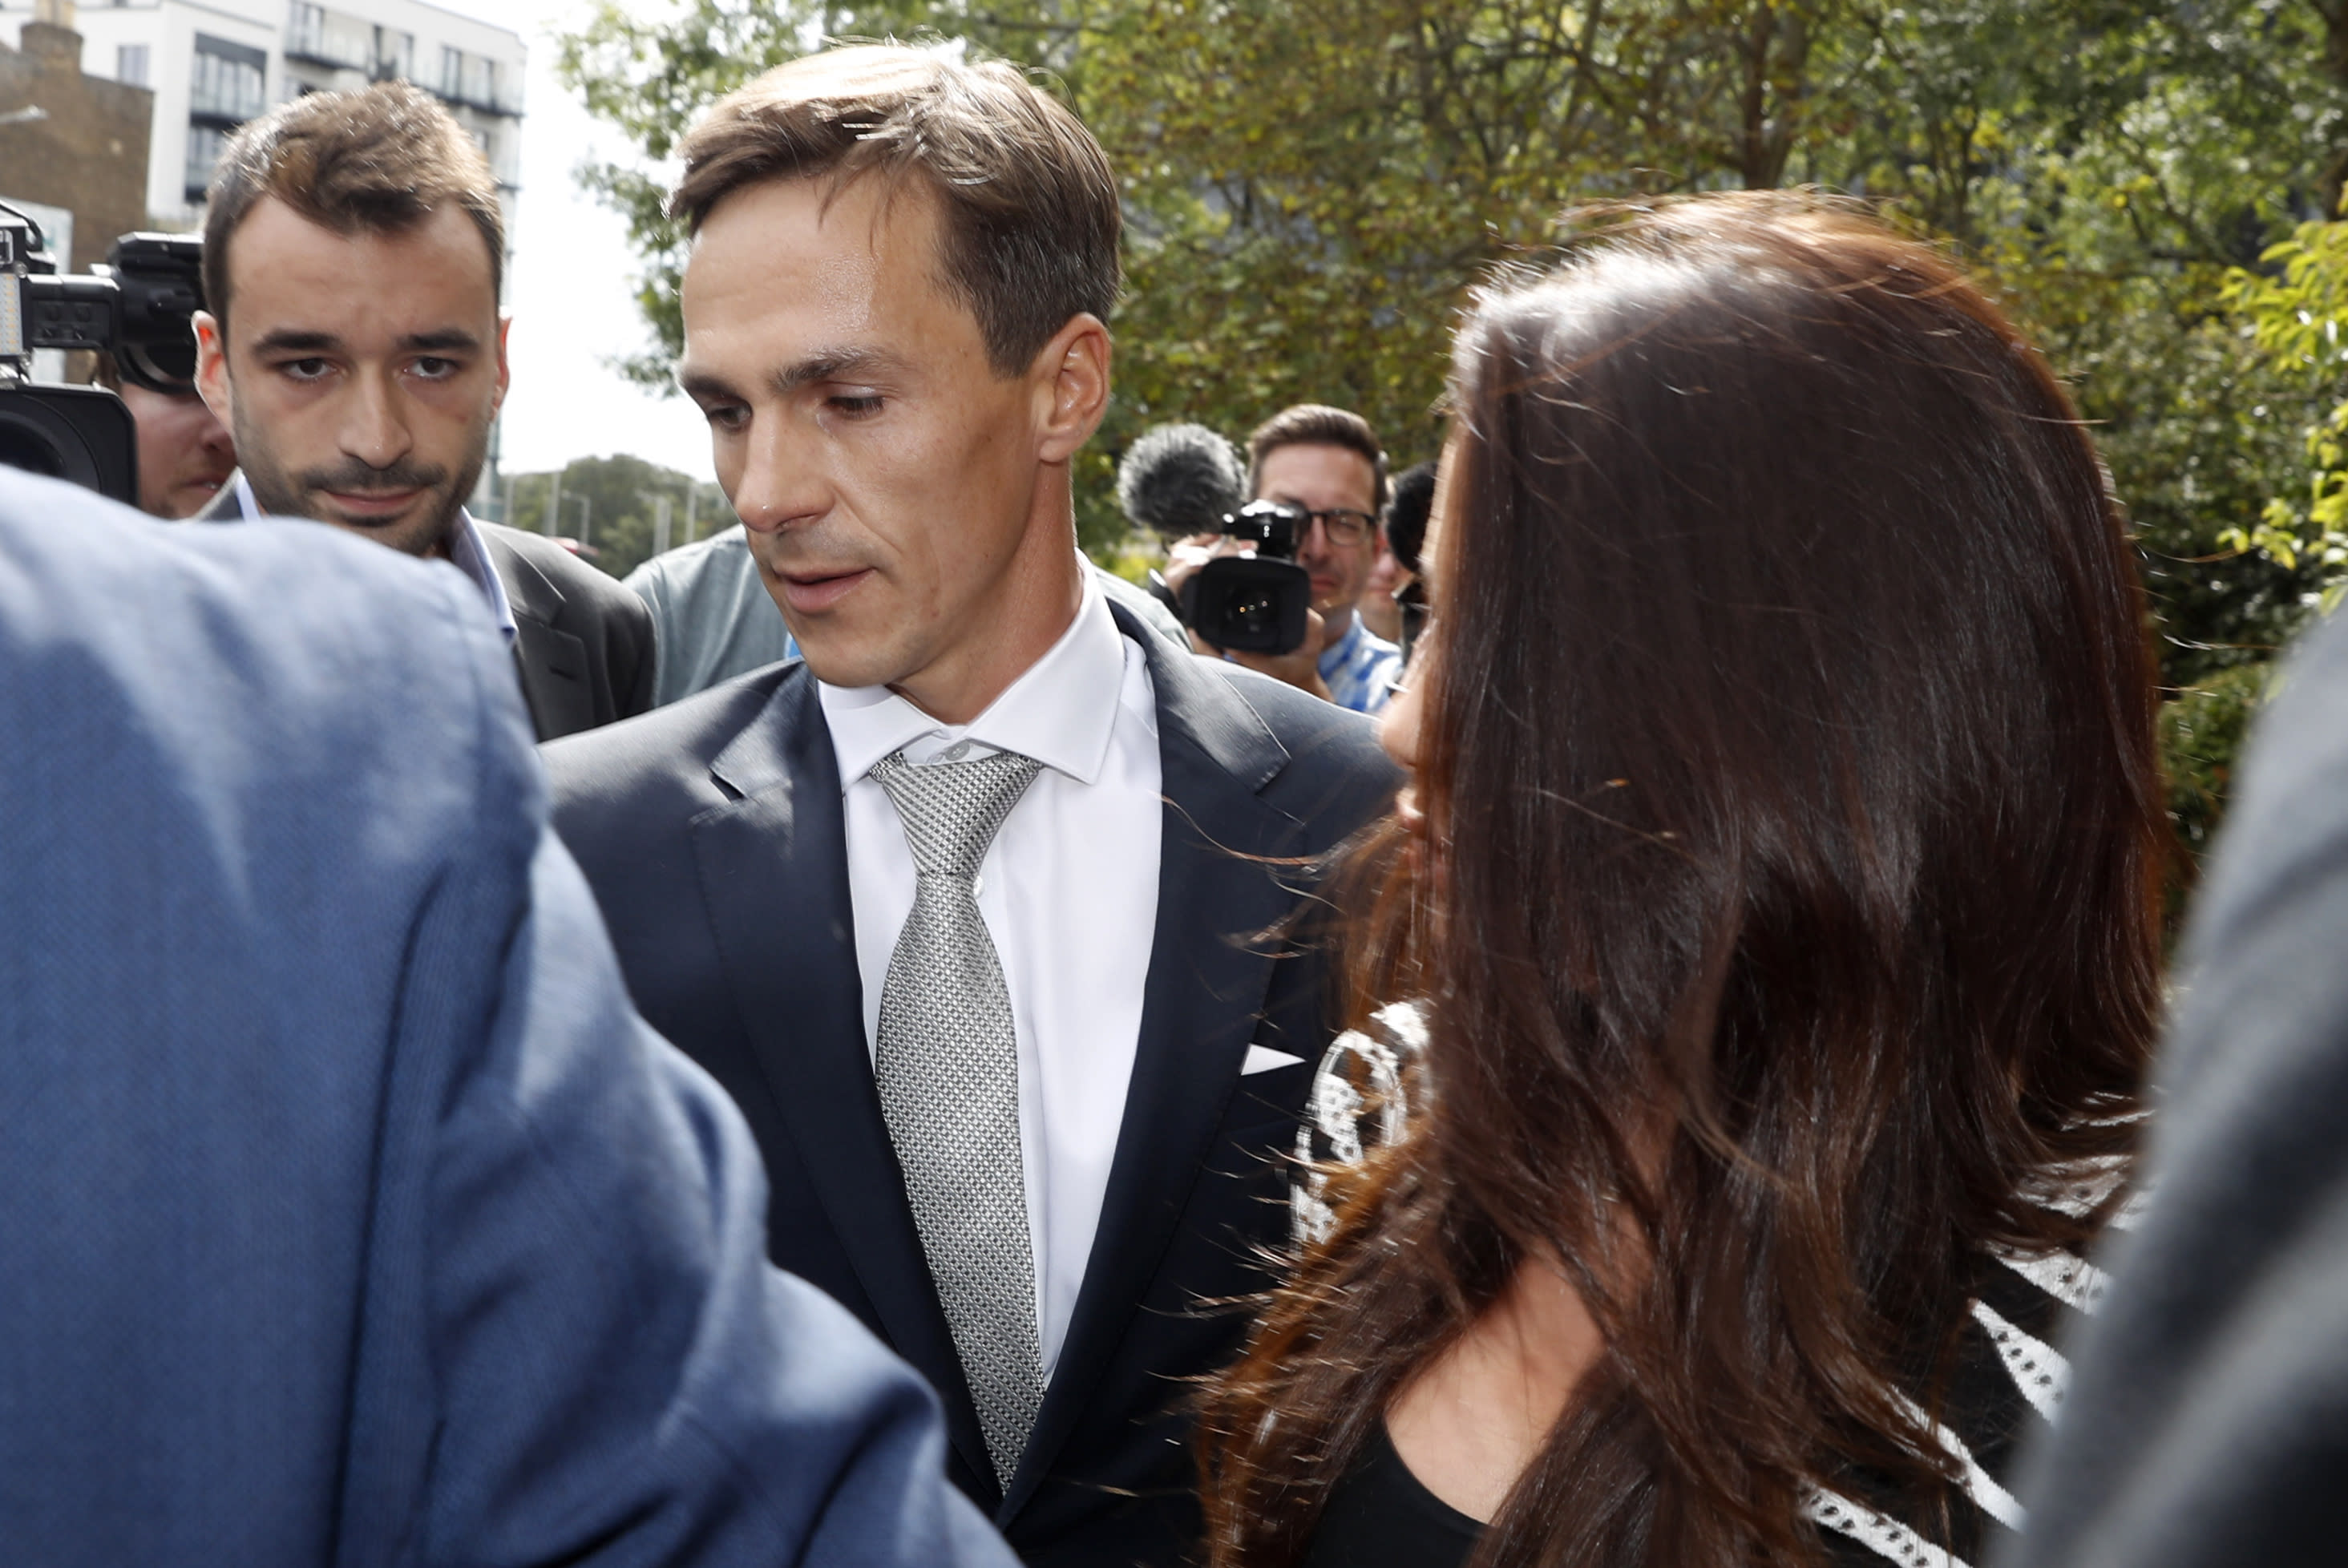 Ryder Cupper Thorbjorn Olesen pleads not guilty to sexual assault